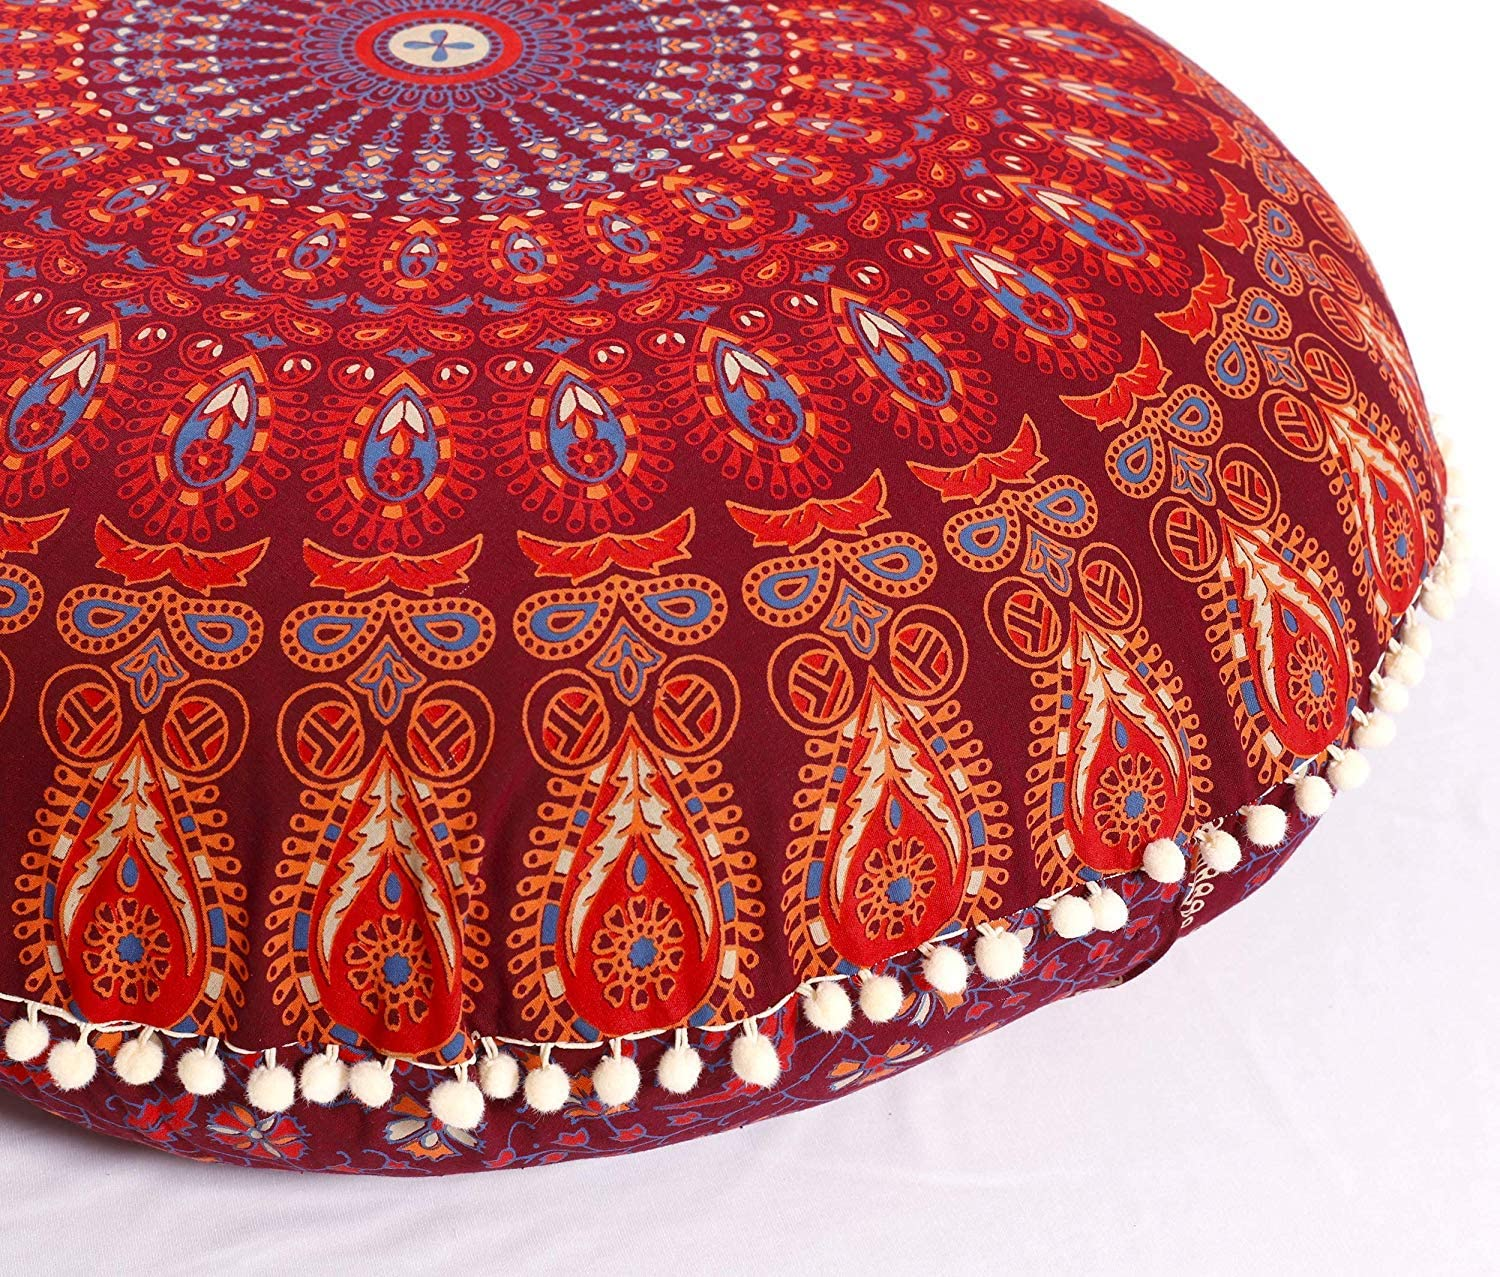 Popular Handicrafts Large Hippie Mandala Floor Pillow Cover - Cushion Cover - Pouf Cover Round Bohemian Yoga Decor Floor Cushion Case- 32